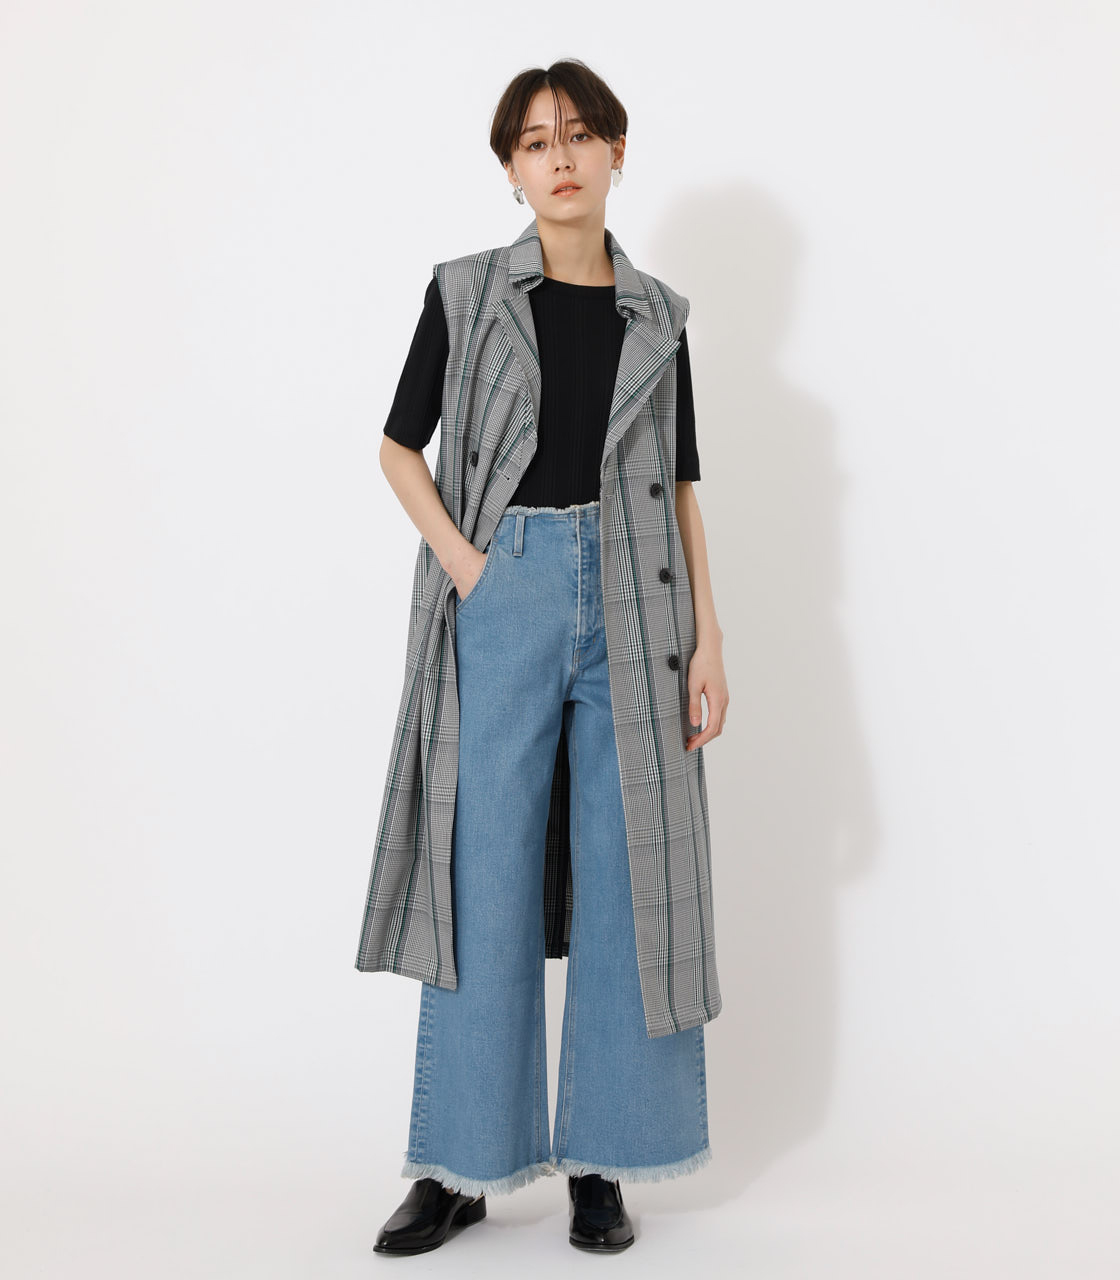 LOOSE TRENCH VEST/ルーズトレンチベスト 詳細画像 柄GRY 1